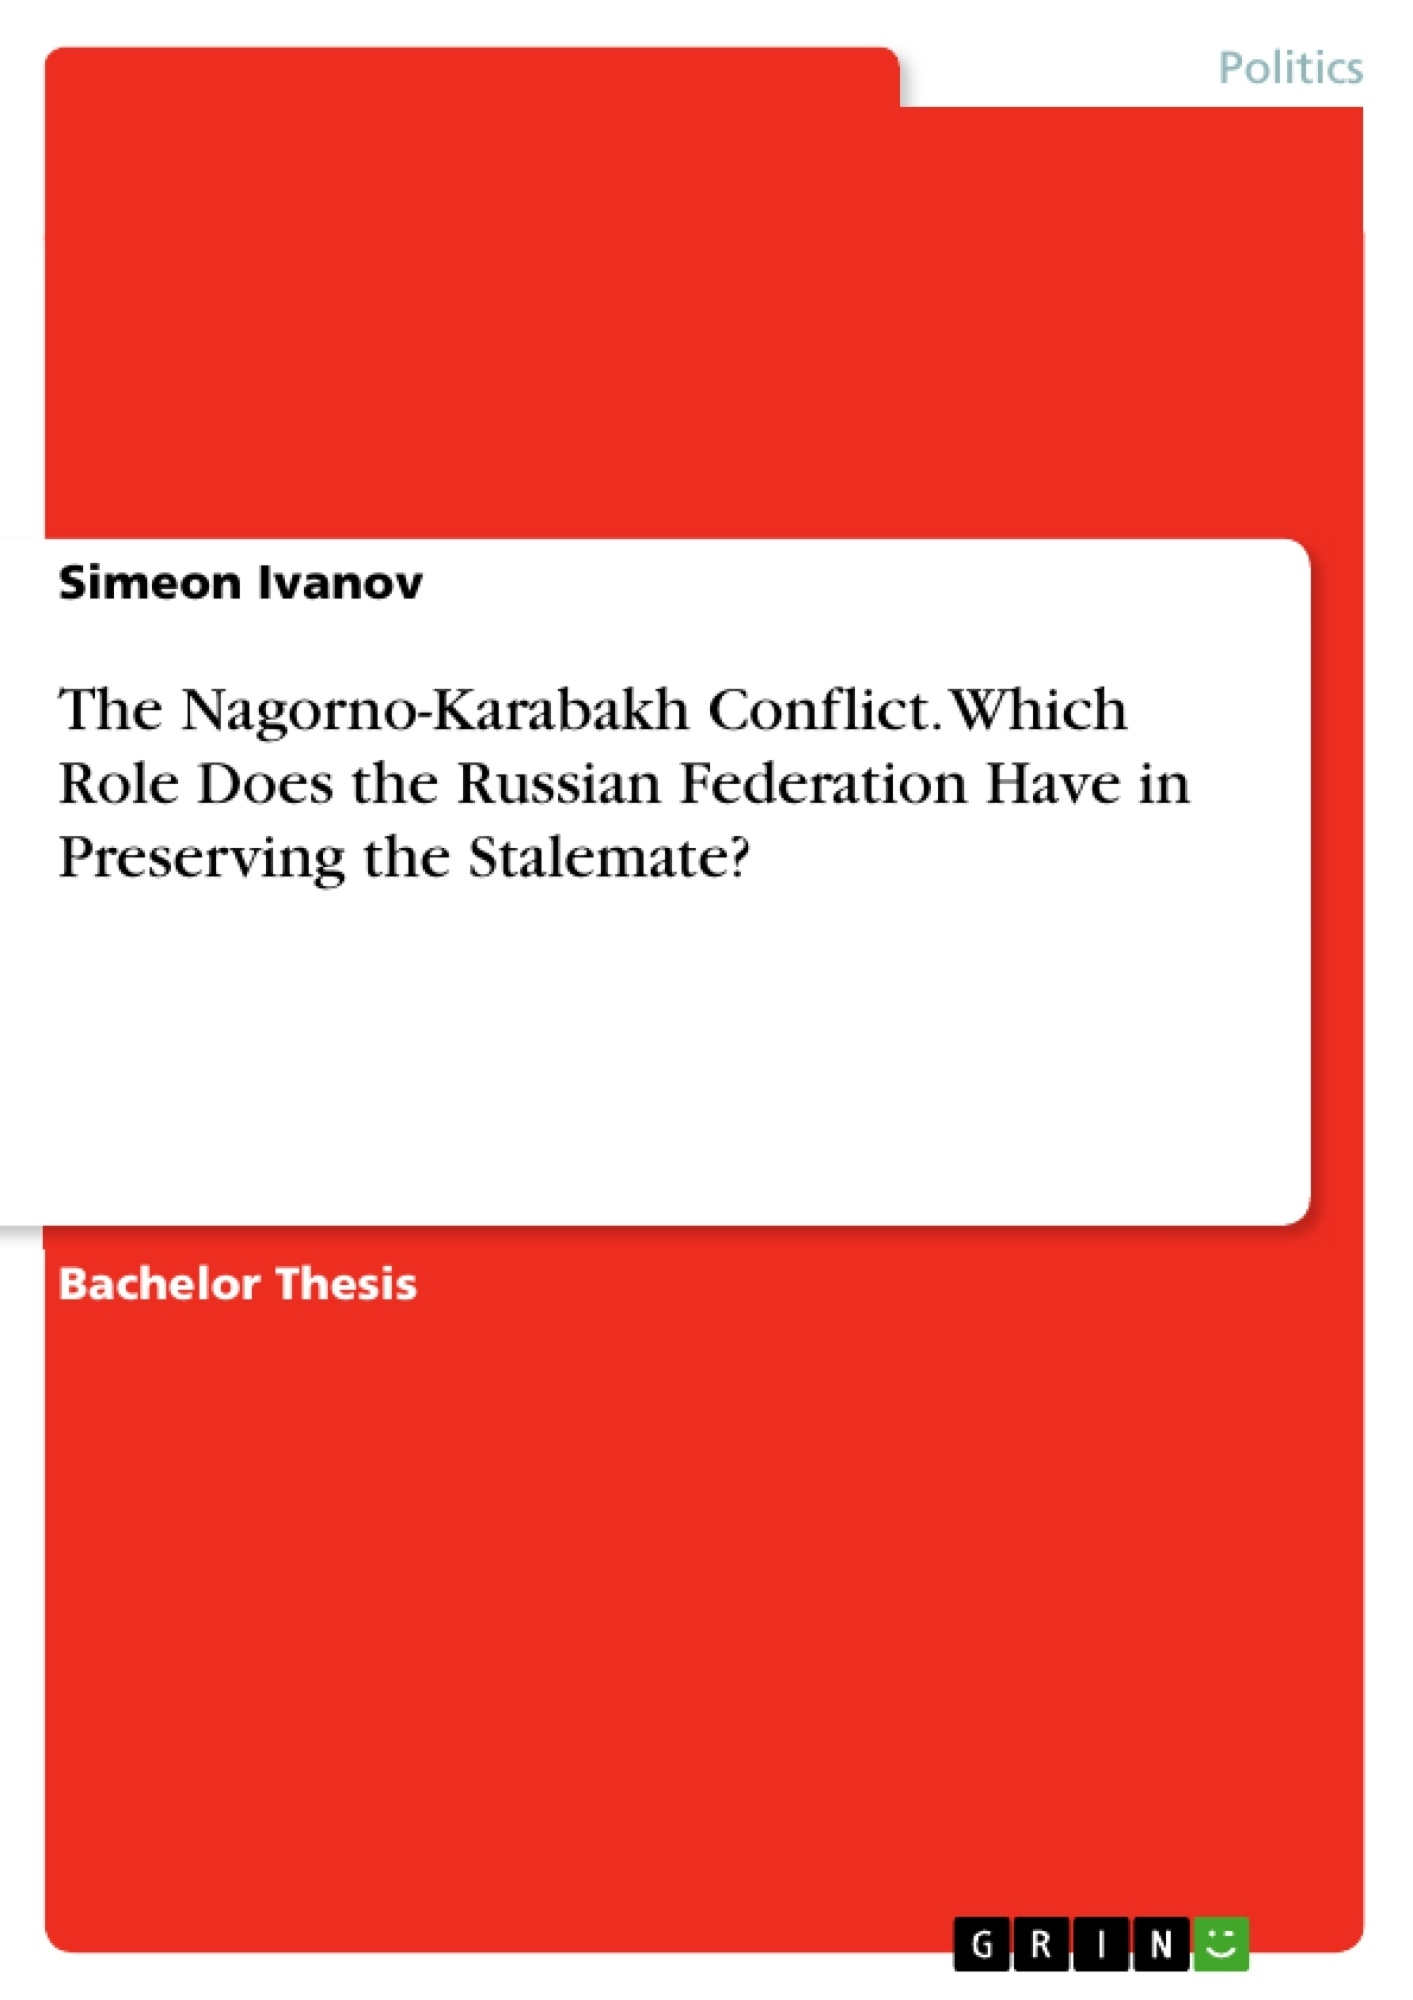 Title: The Nagorno-Karabakh Conflict. Which Role Does the Russian Federation Have in Preserving the Stalemate?